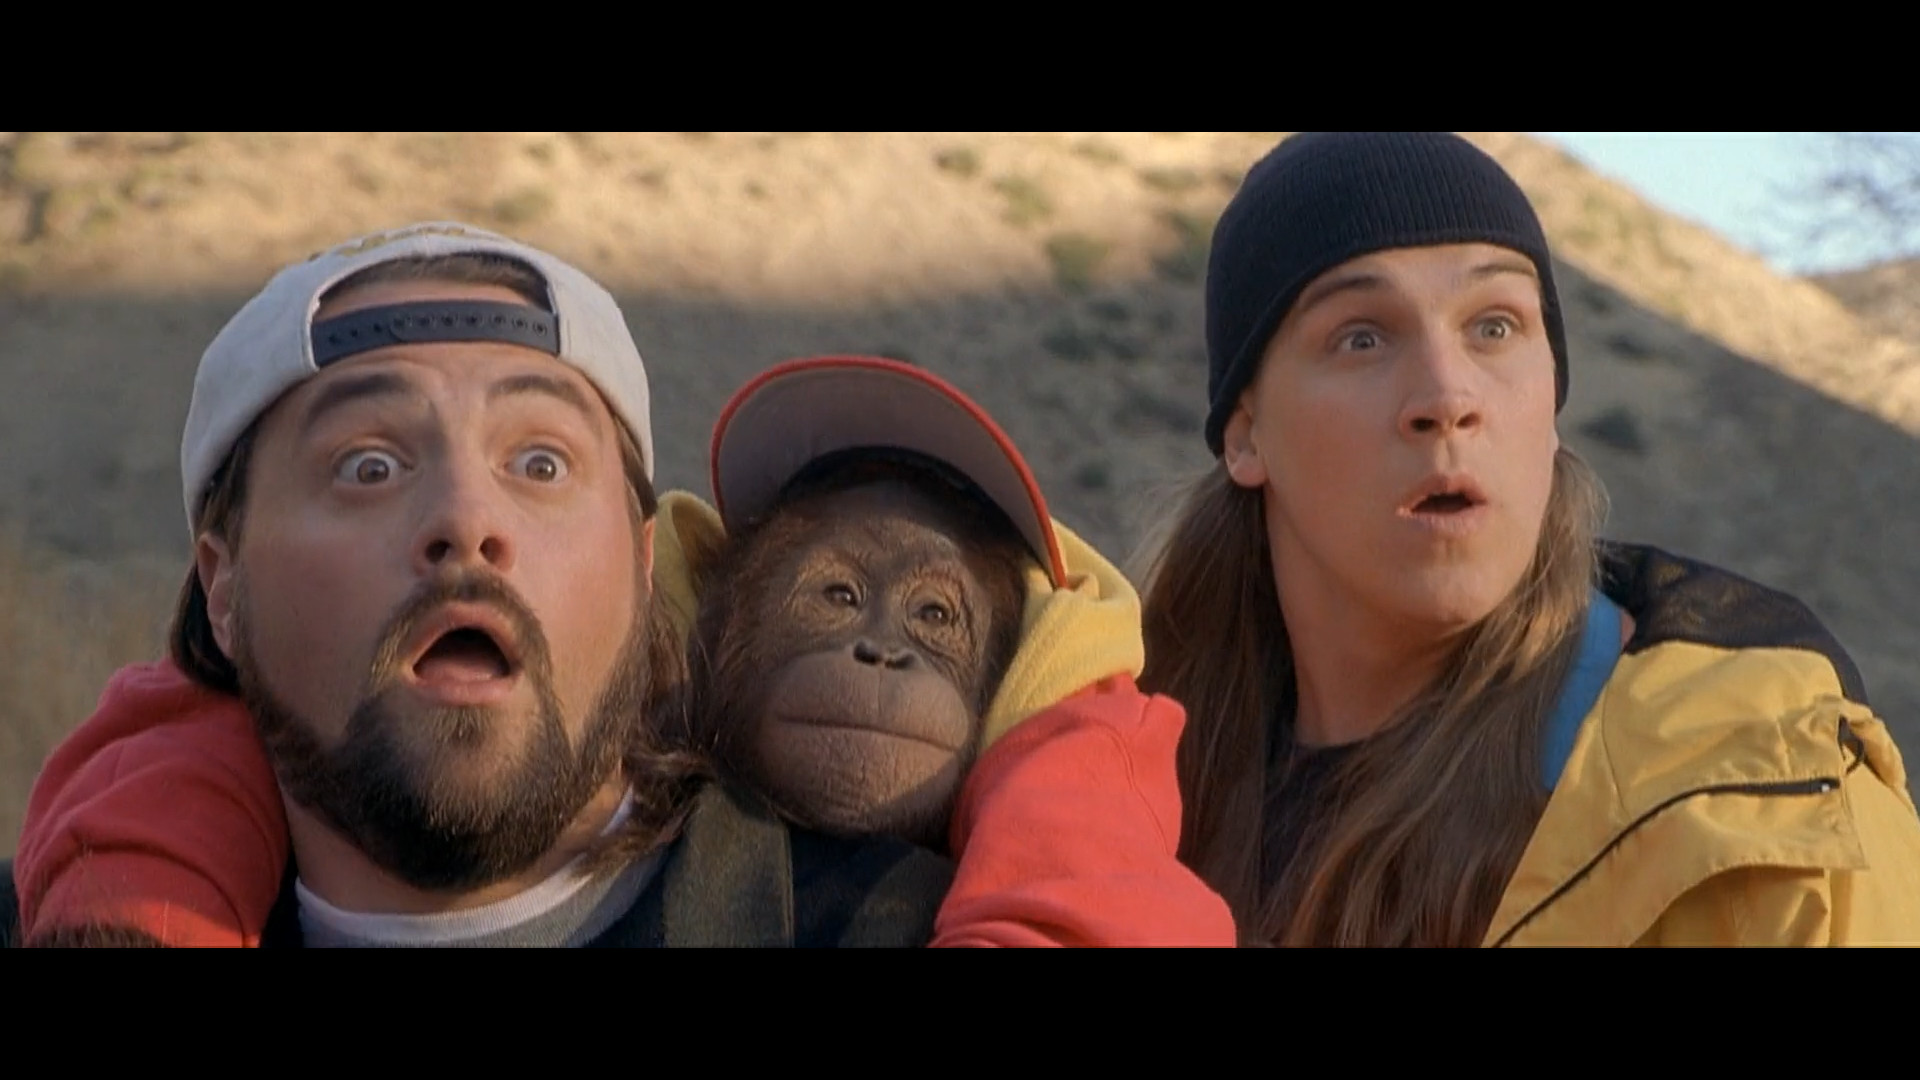 1920x1080 Jay And Silent Bob Strike Back Wallpaper 3 - 1920 X 1080